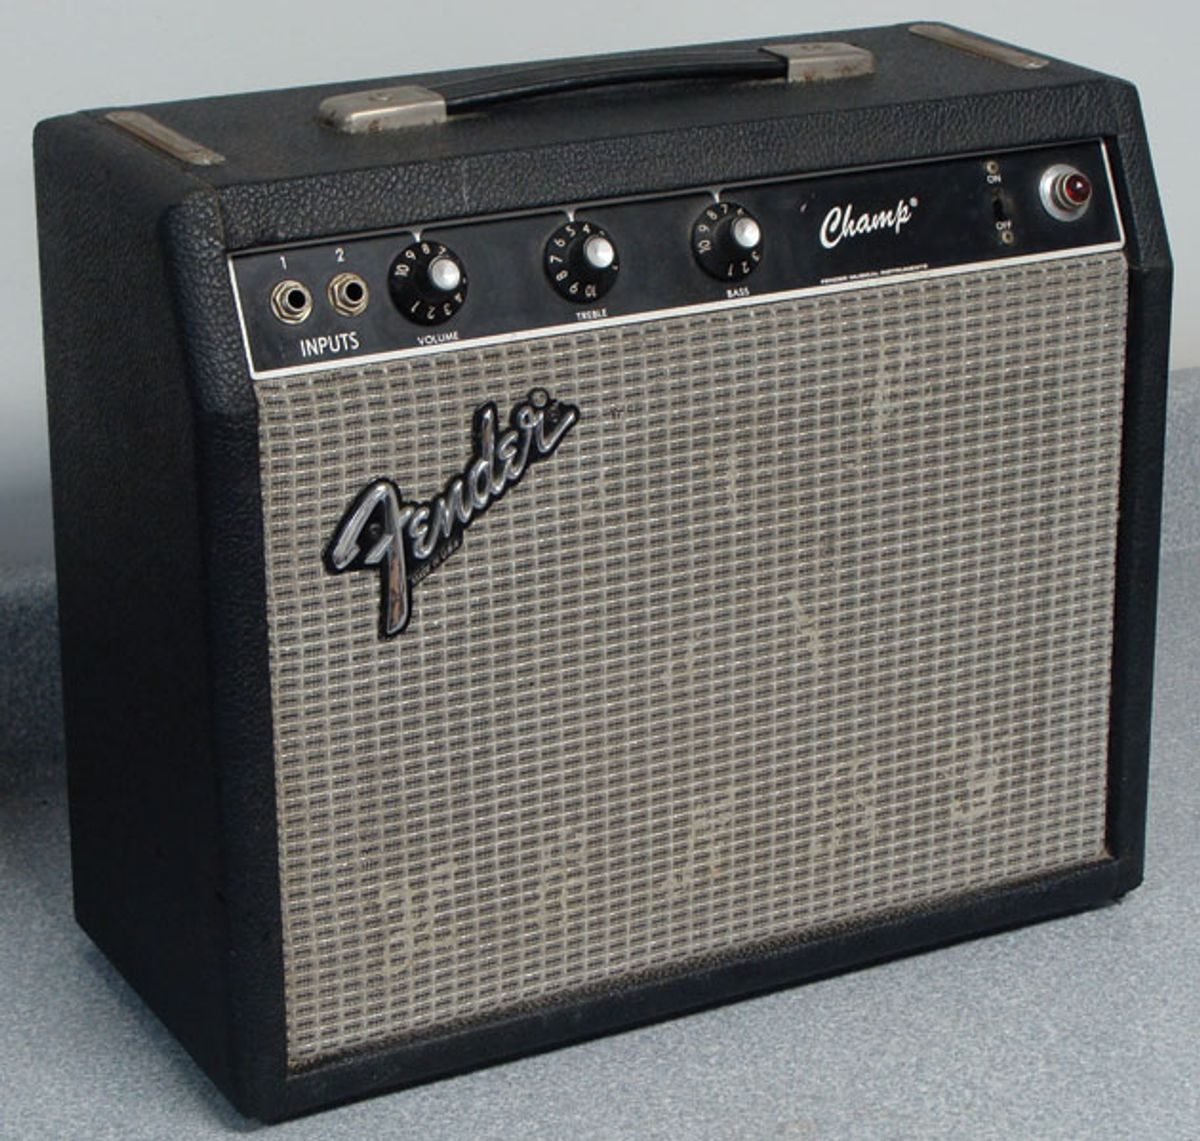 Ask Amp Man: Pumping Up an '80s Fender Champ